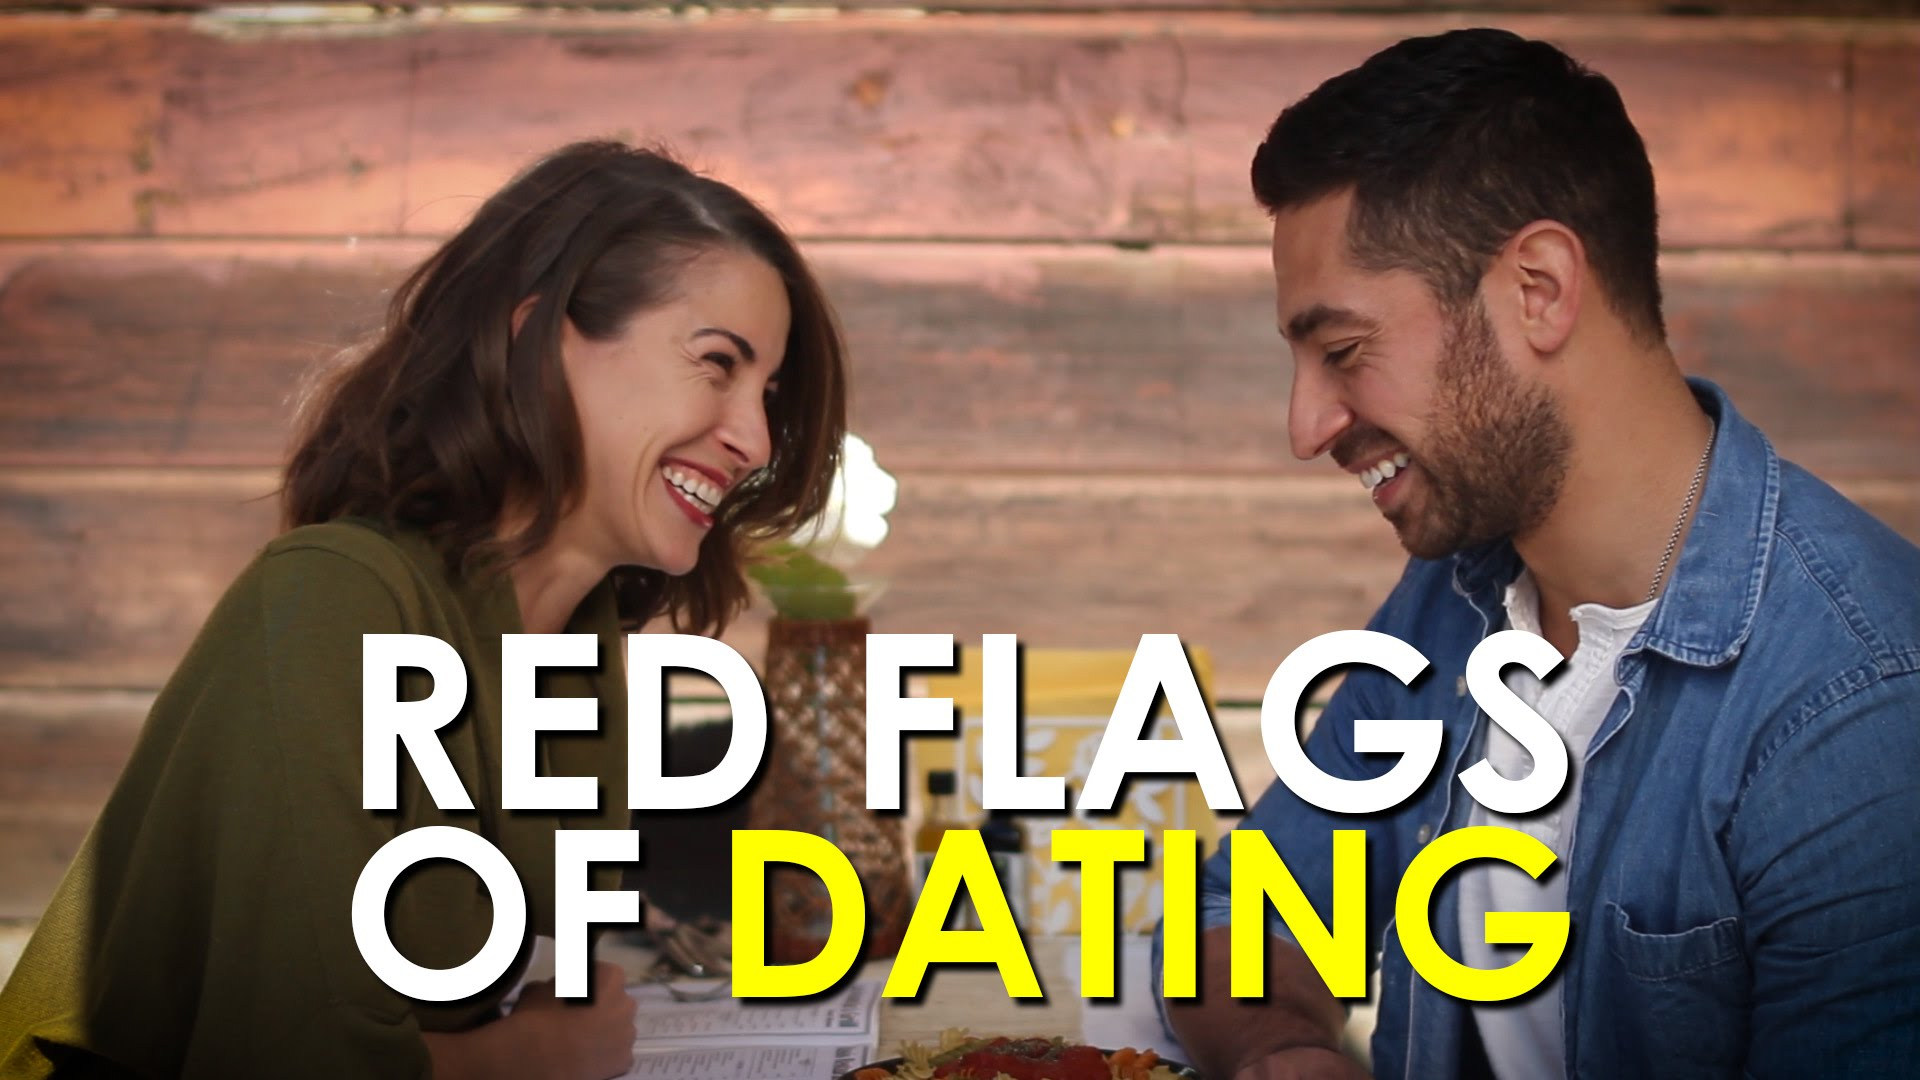 13 Dating at 50 Red Flags You Should Know